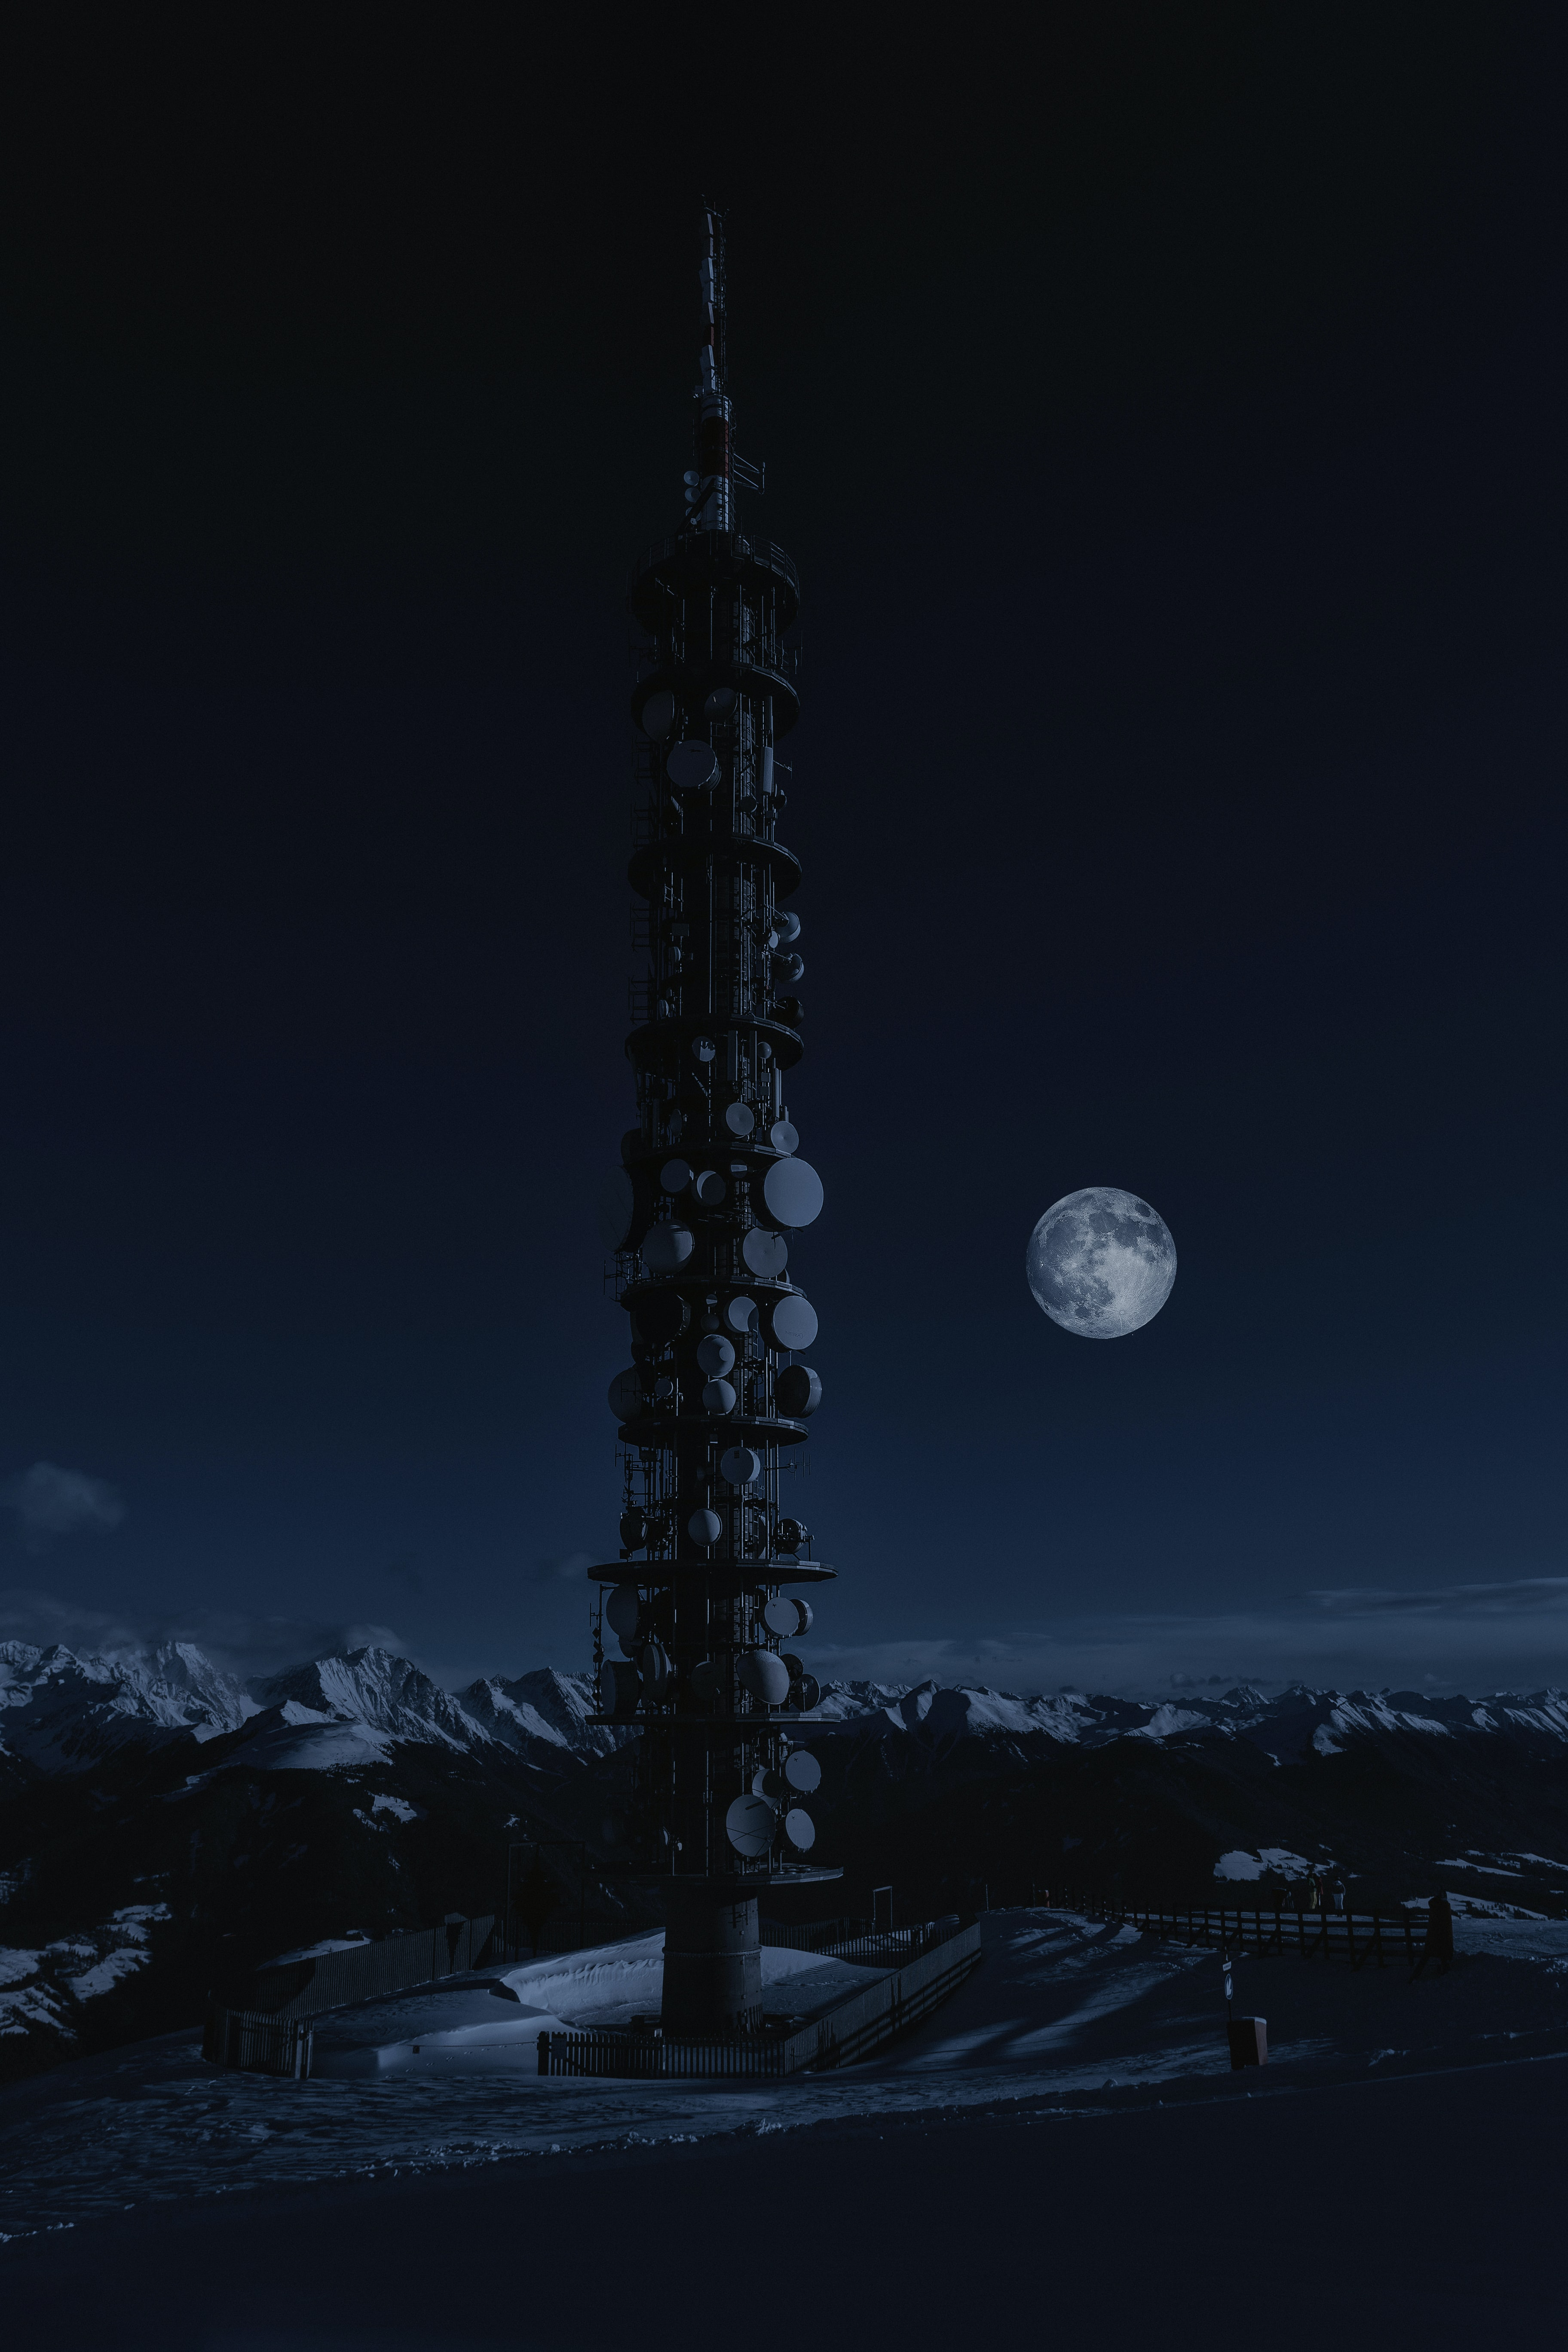 tower on snow under full moon